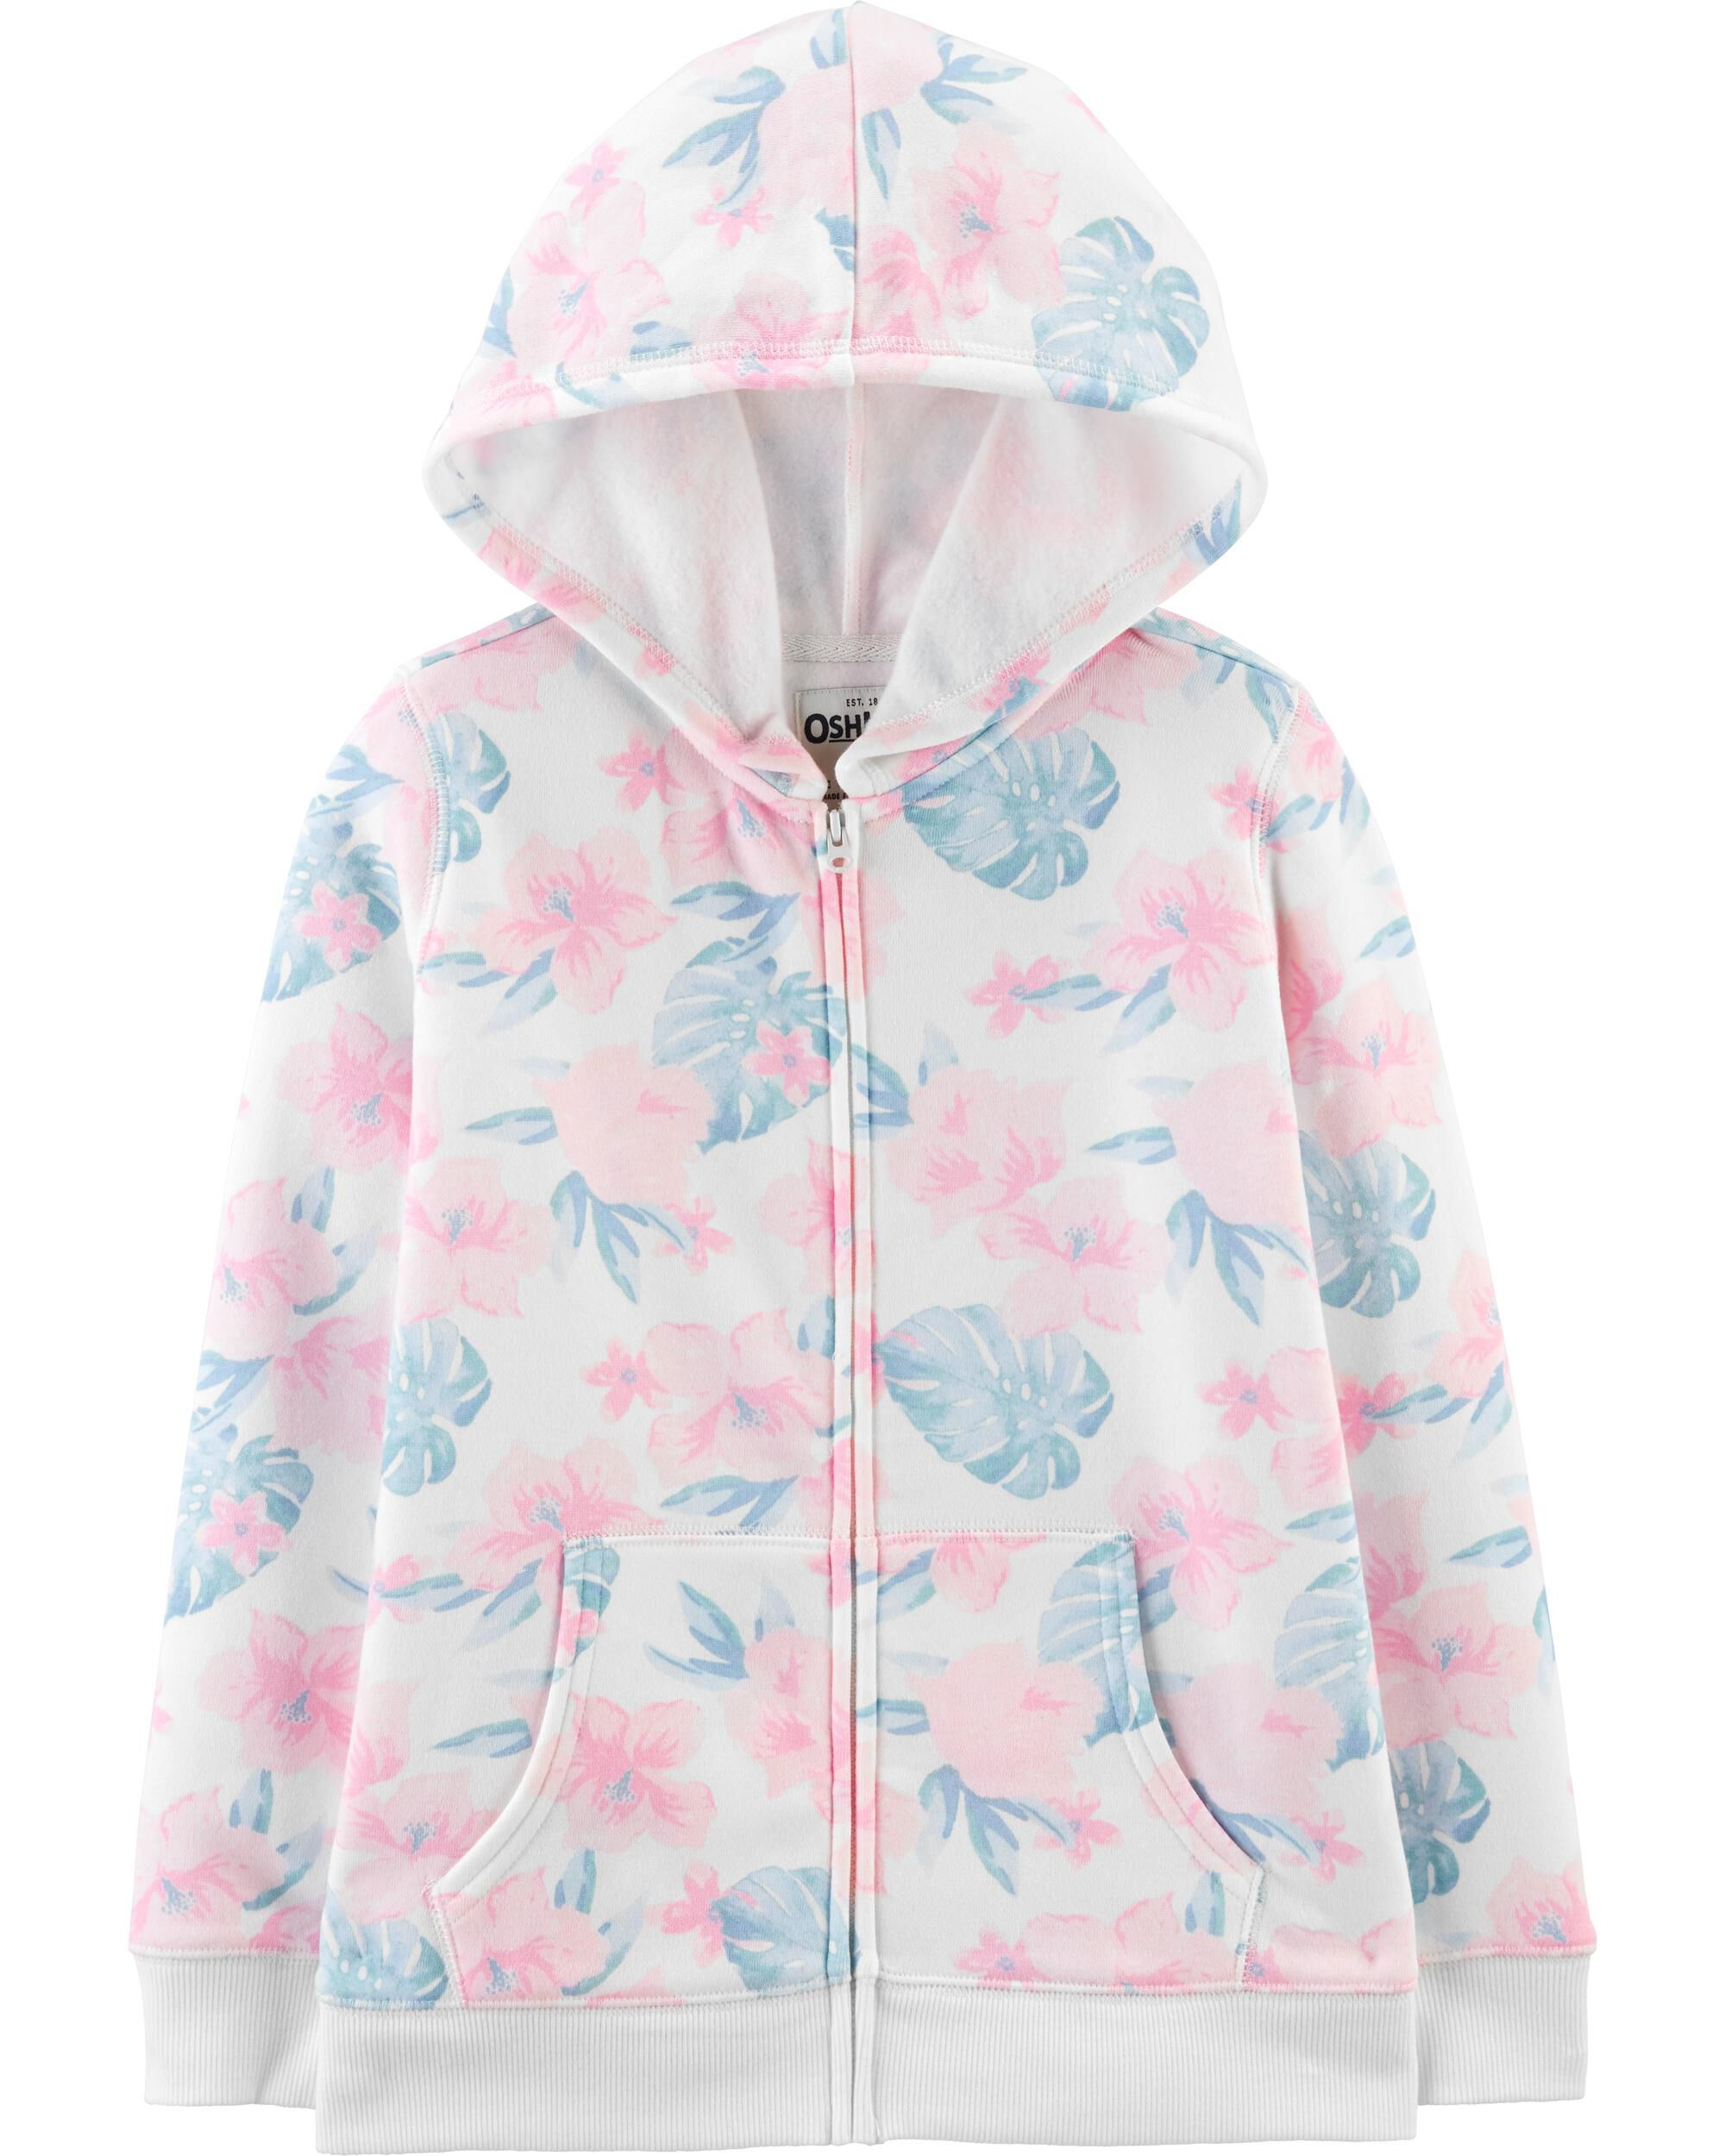 *CLEARANCE*Tropical Floral Hoodie